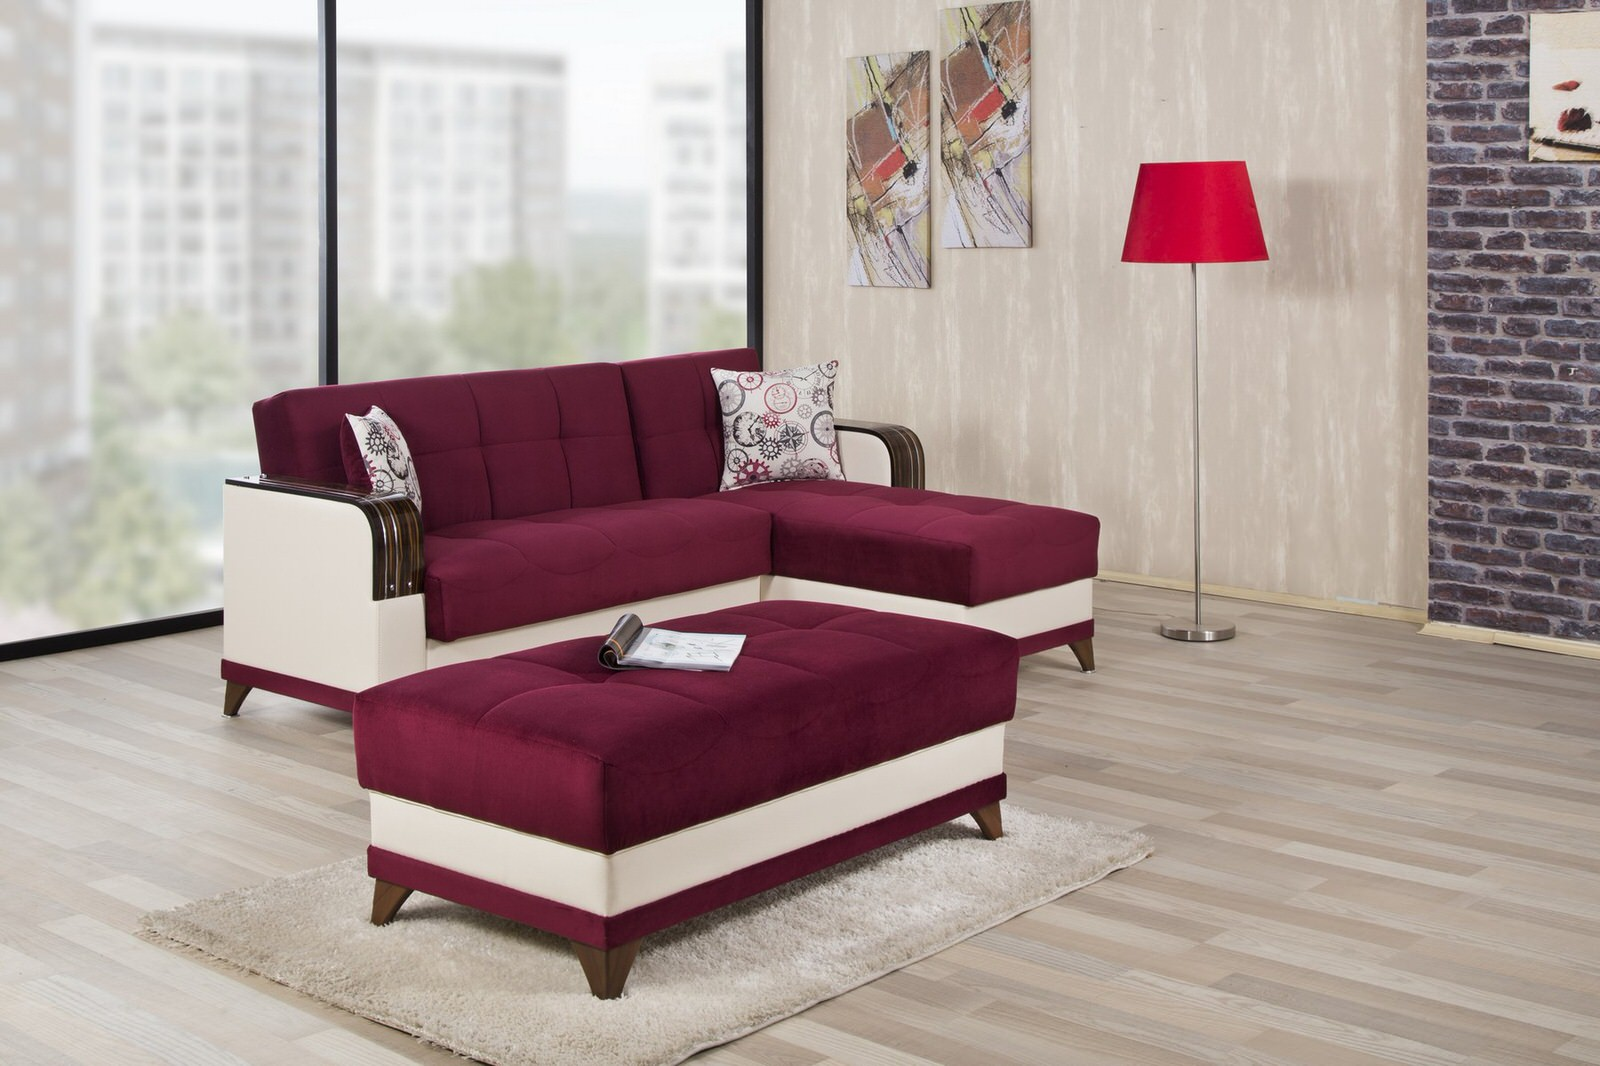 Almira Golf Burgundy Sectional Sofa by Casamode